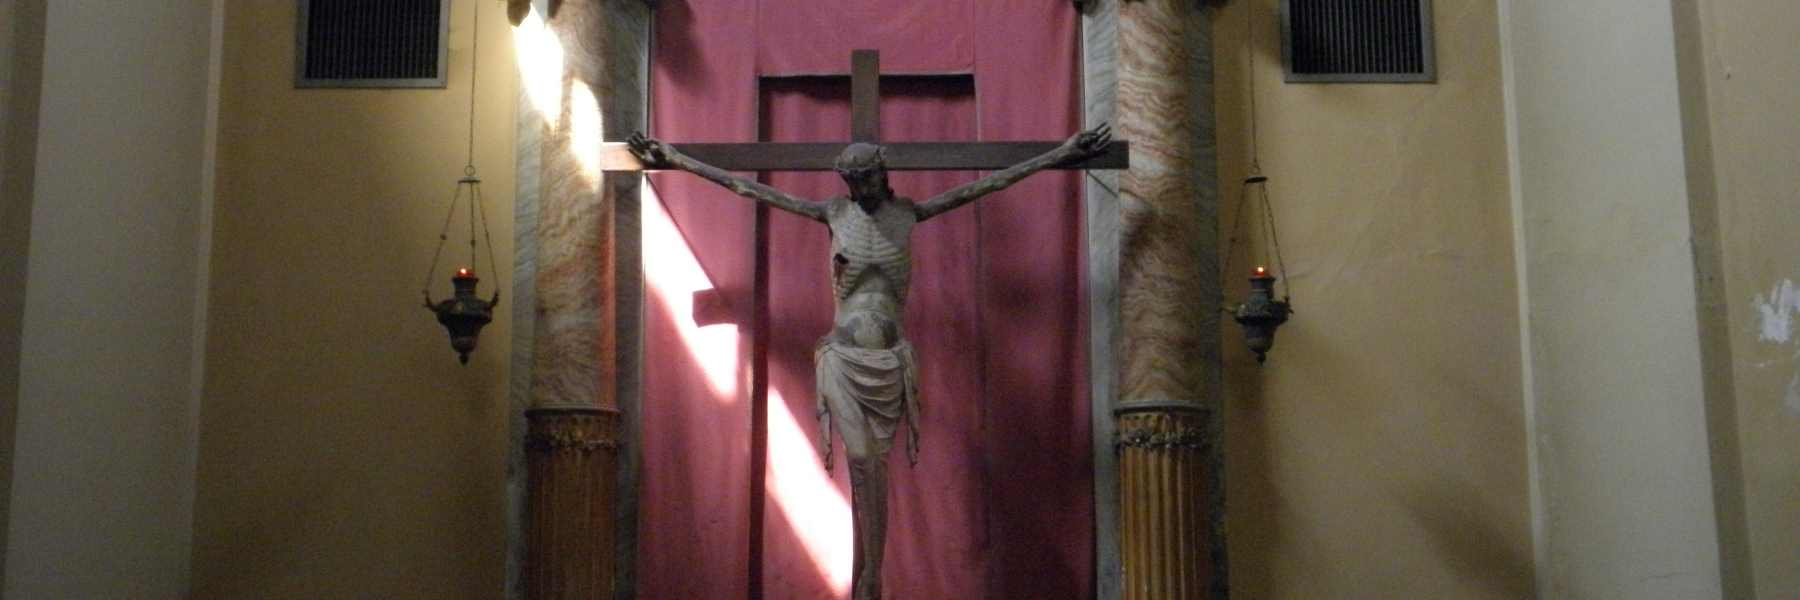 Wooden Crucifix of the Suffragio Church